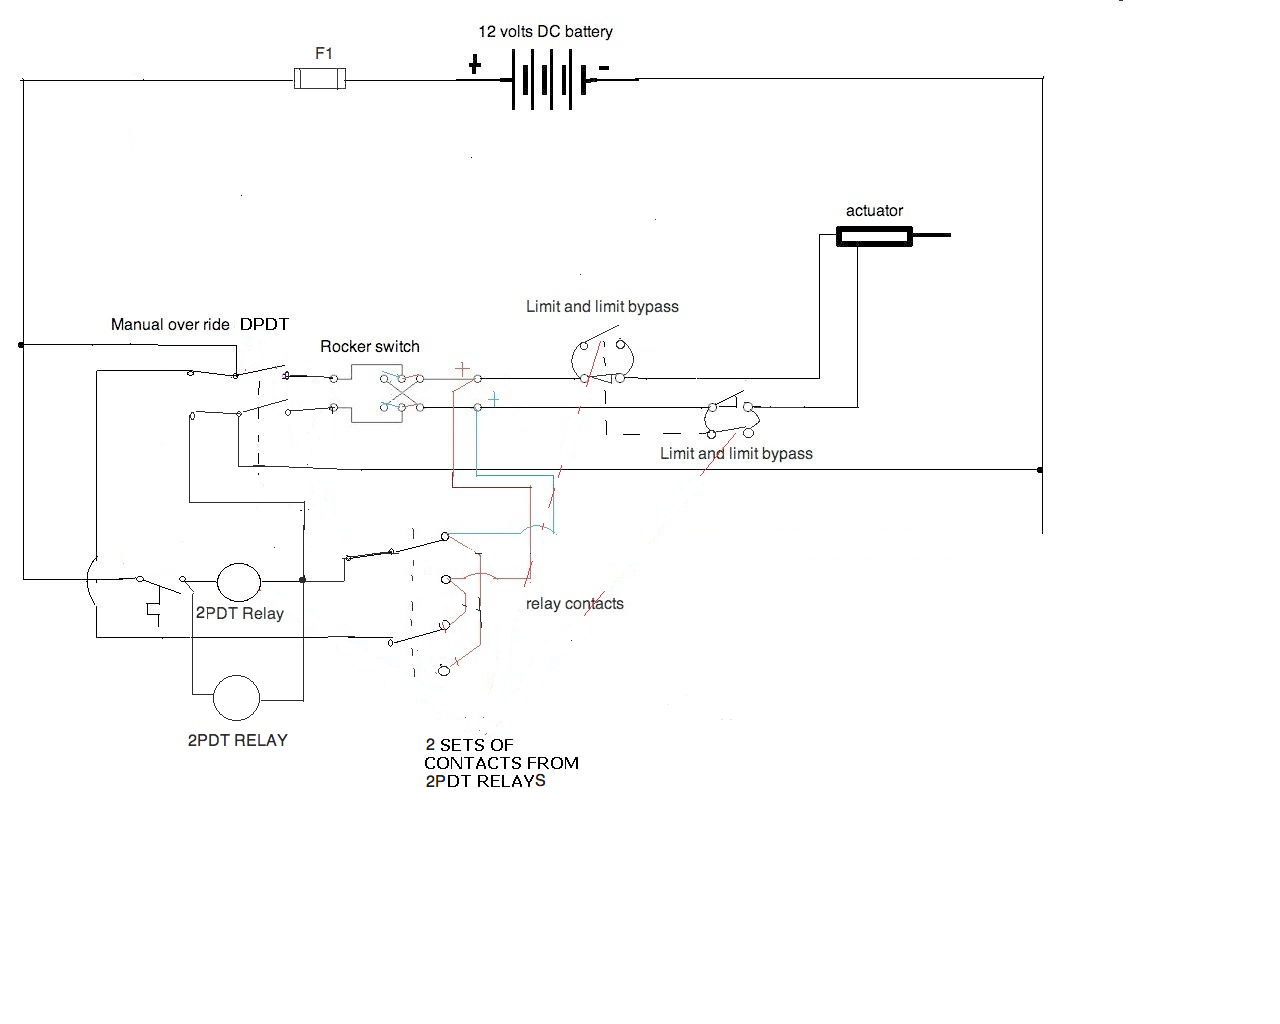 12 Volt Linear Actuator Wiring I Need A Diagram For V Oreck Xl Switch Application All Components The Rocker Back Feed On